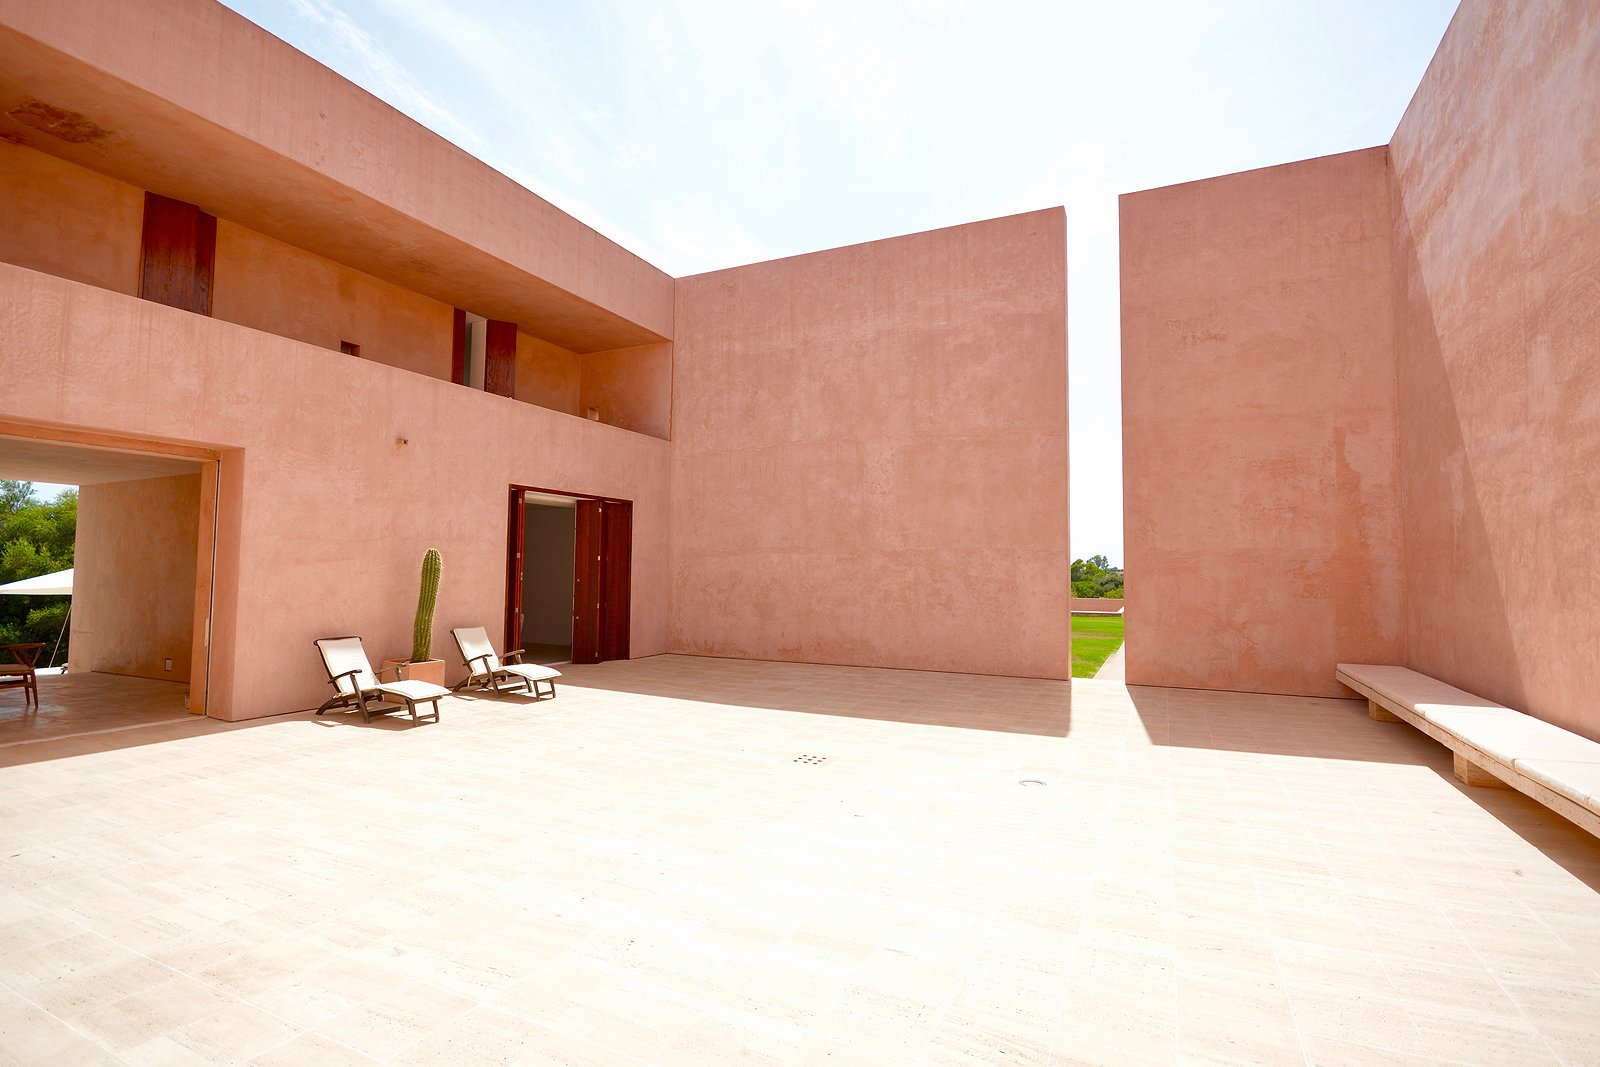 Outdoor, Large Patio, Porch, Deck, and Side Yard The home has been built around a central courtyard, with the surrounding exterior wall featuring a dramatic cut-out that inserts both light and shadows into the design.    Photo 3 of 11 in This John Pawson-Designed Retreat in Mallorca Is a Minimalist's Dream